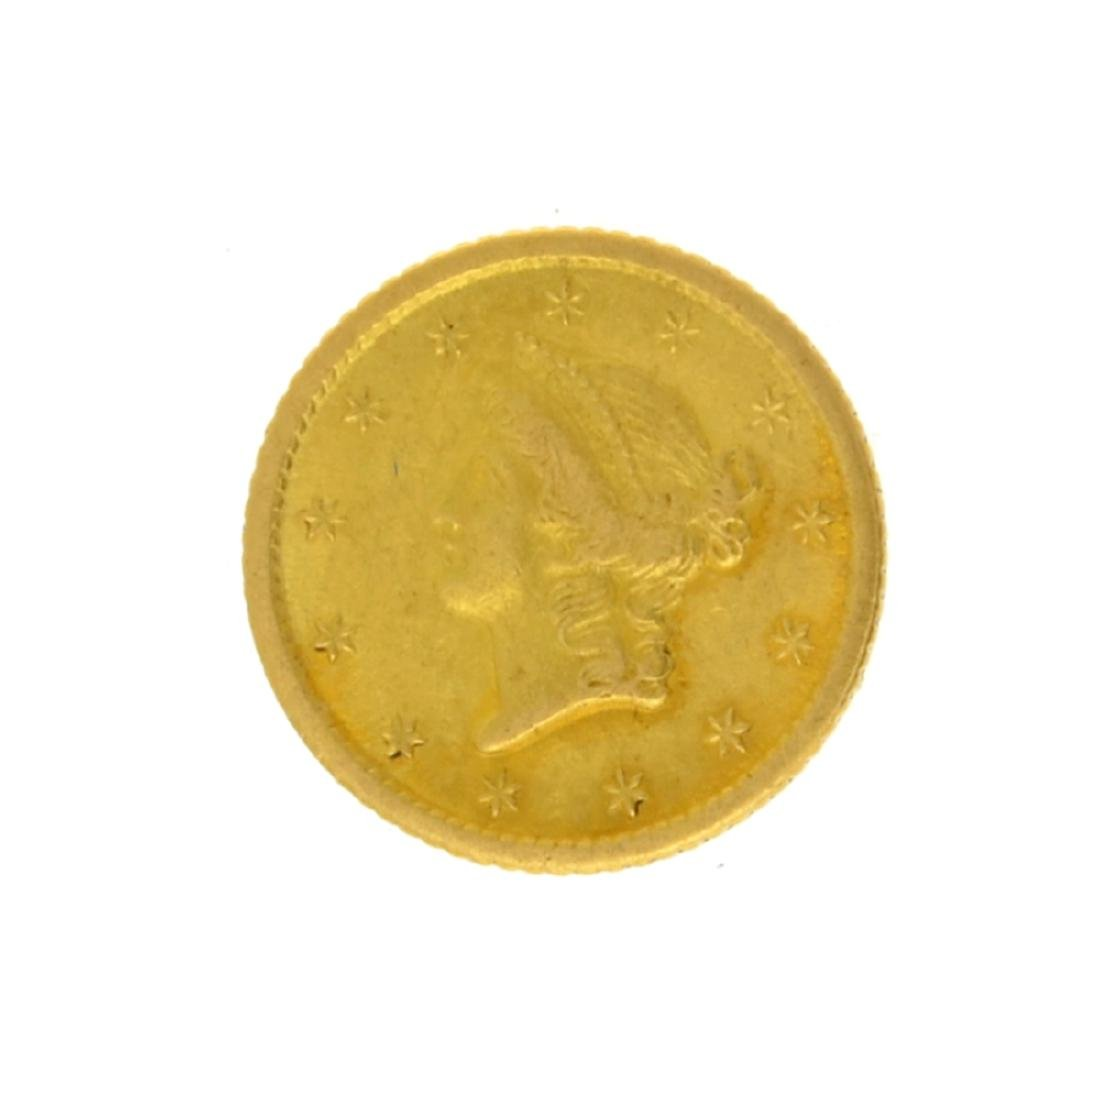 1851-O $1 Liberty Head Gold Coin